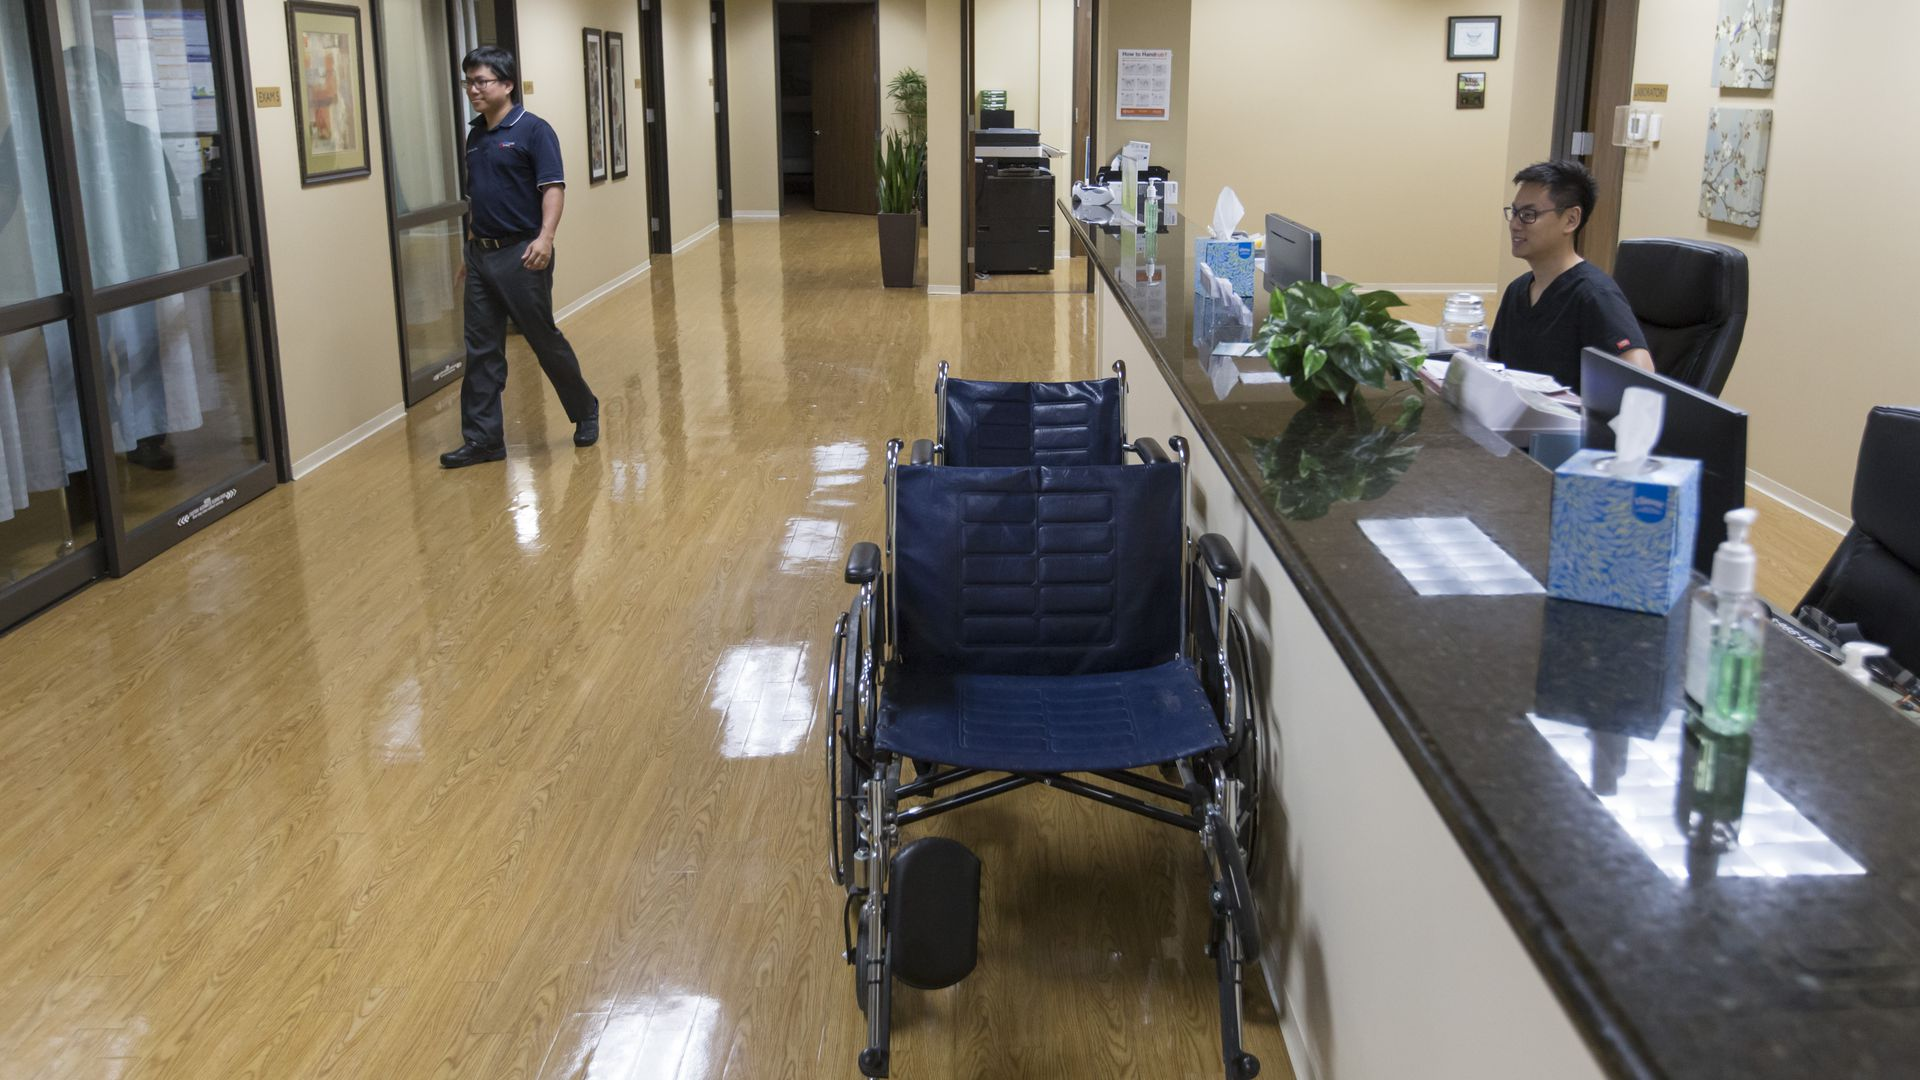 A nurse sits behind a desk in an emergency room with wheelchairs nearby.